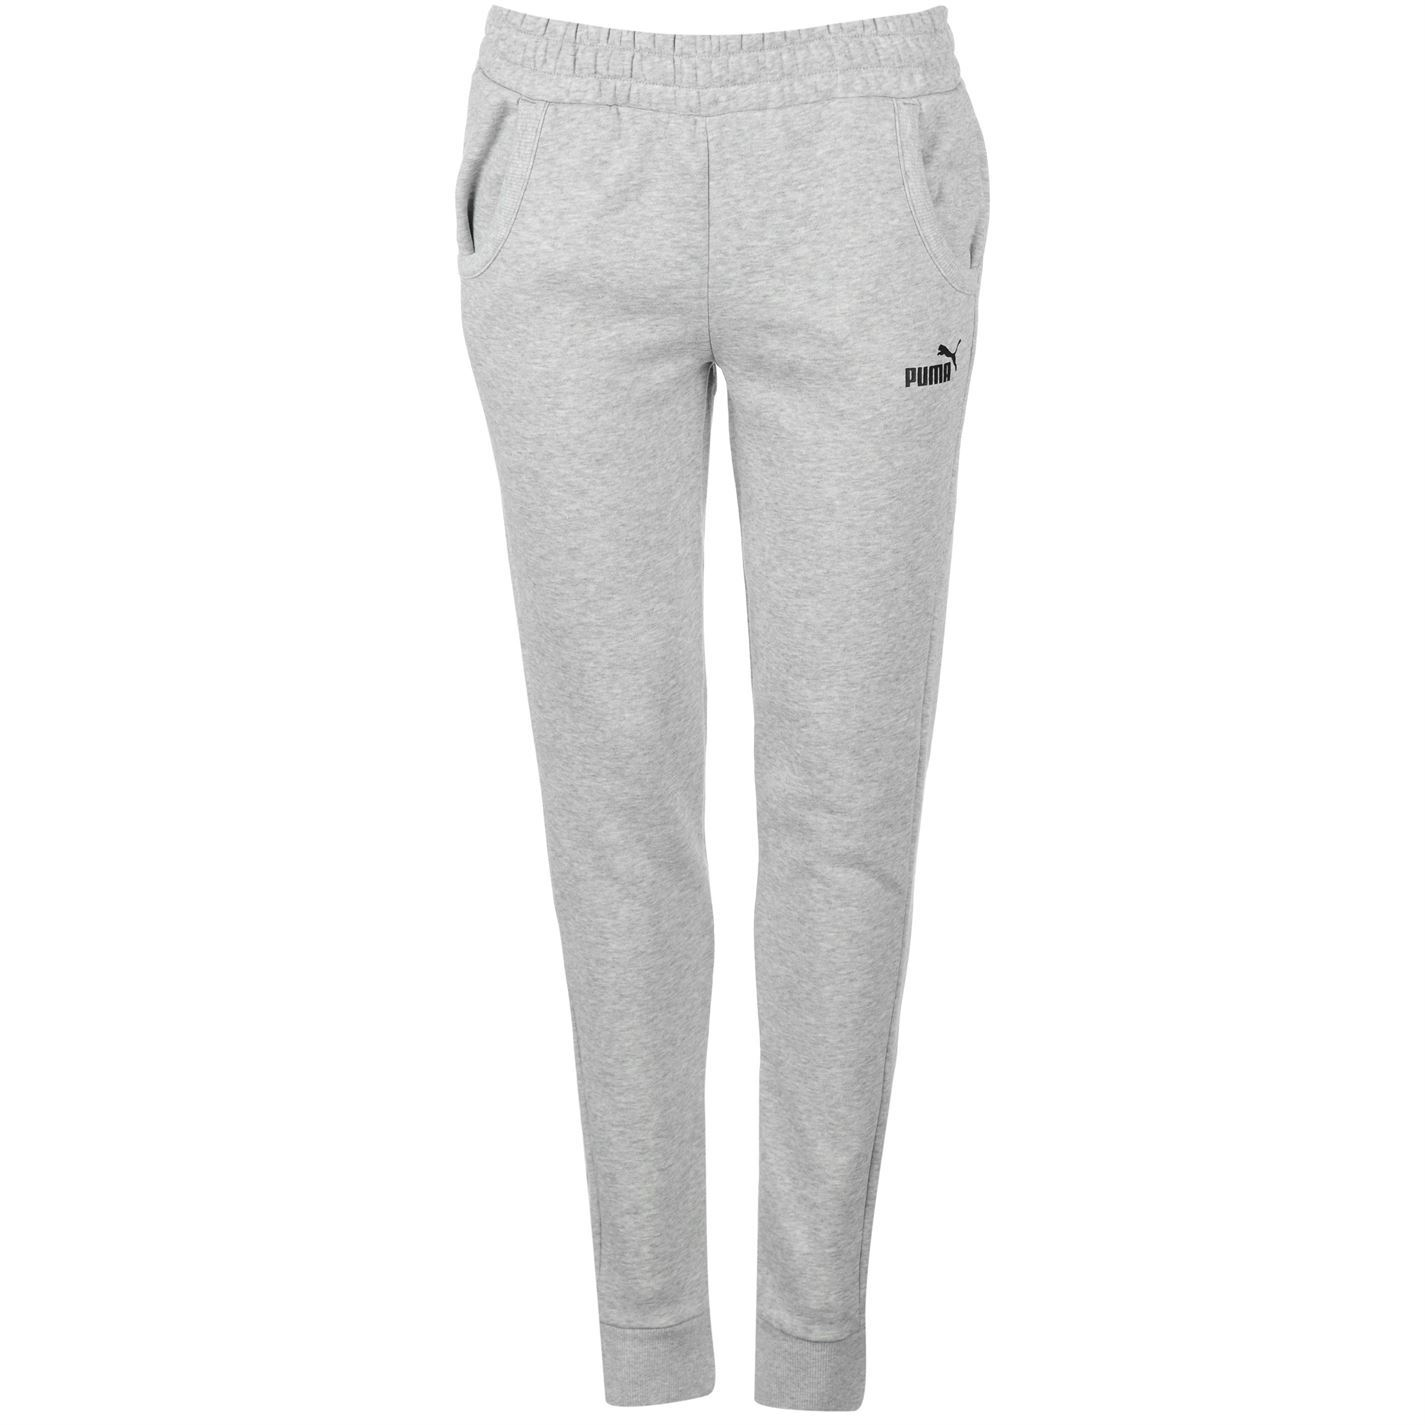 converse ladies track pants